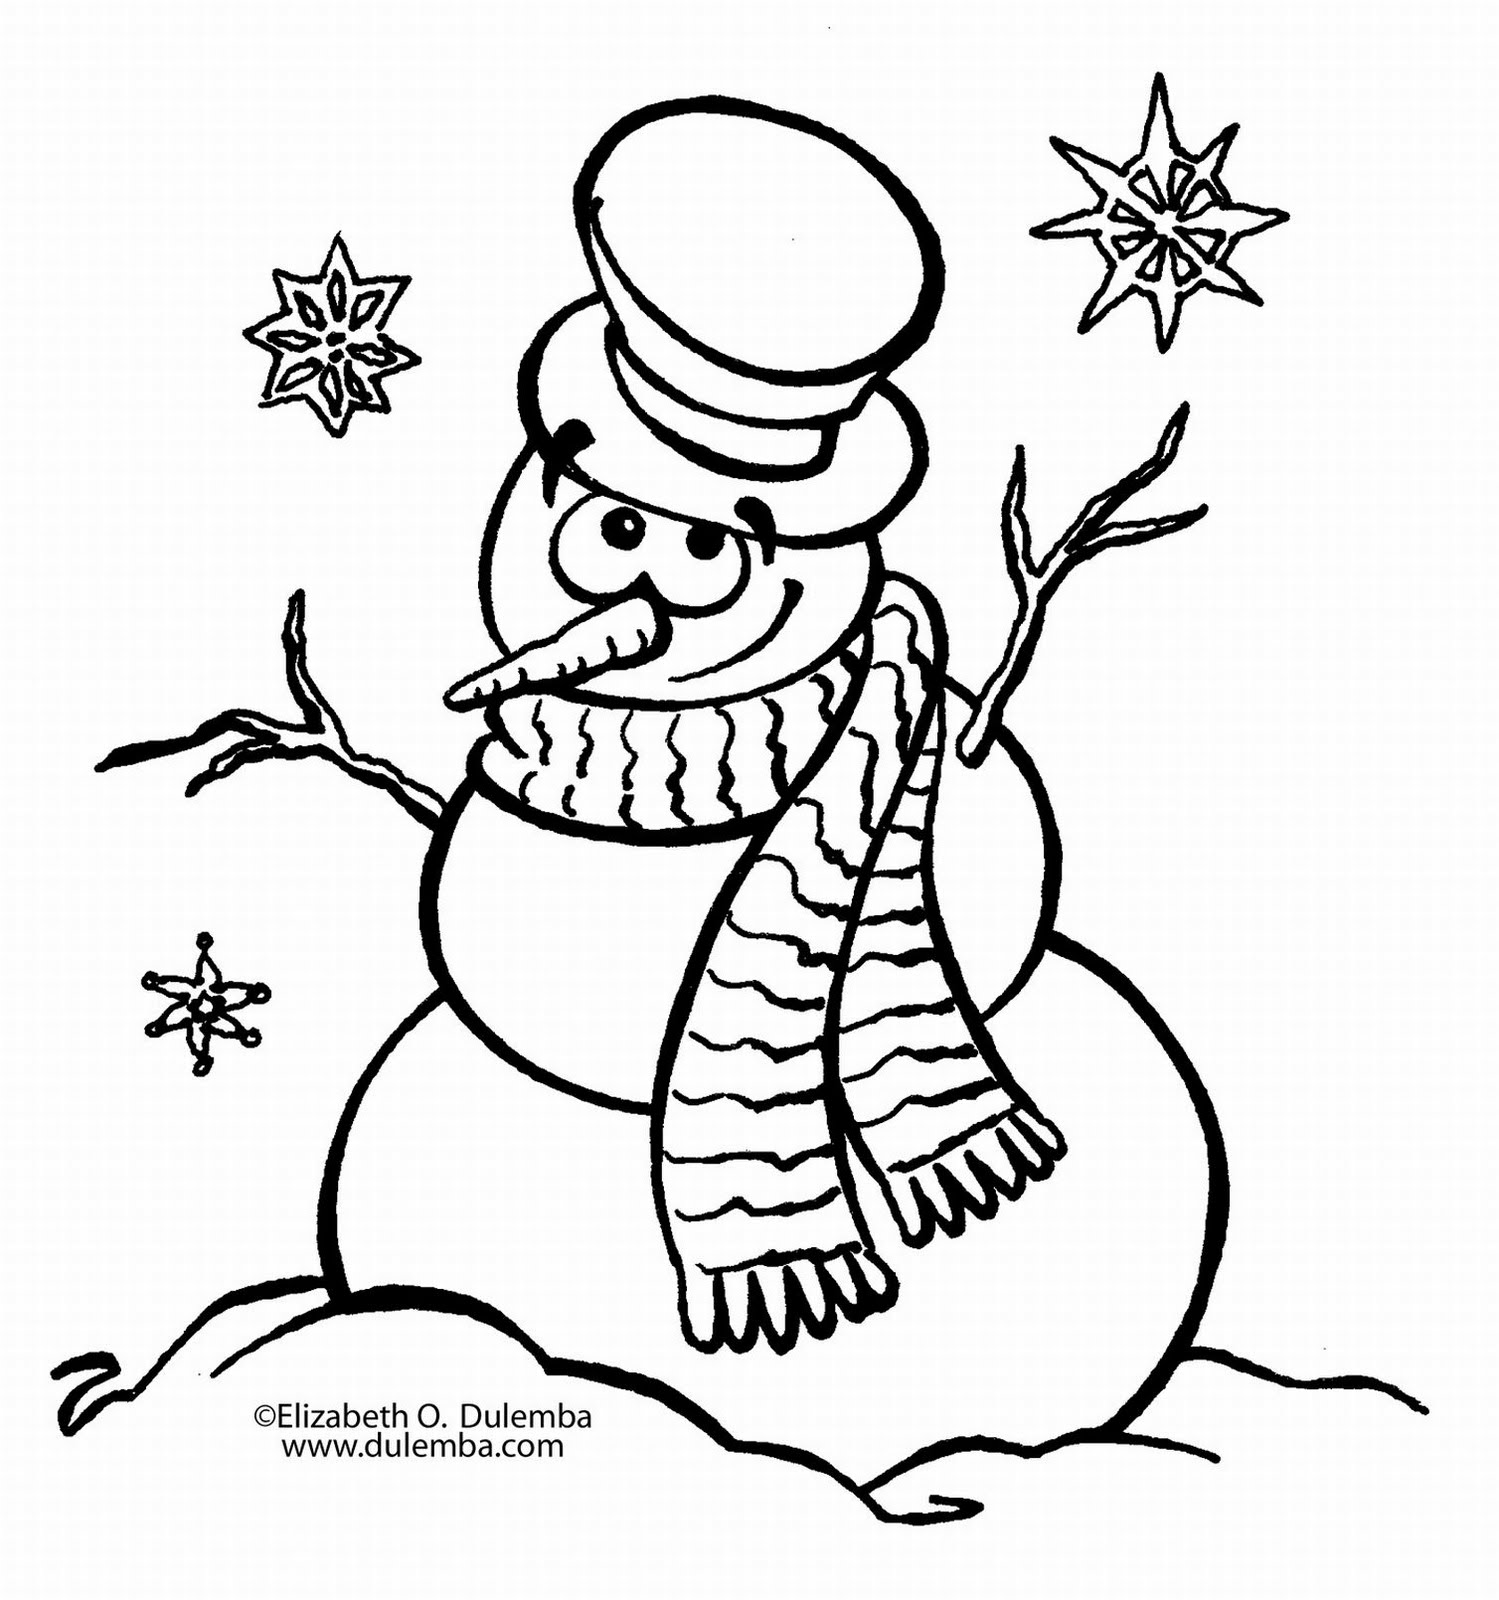 snowmancoloring sheets snowman coloring pages to download and print for free snowmancoloring sheets 1 3